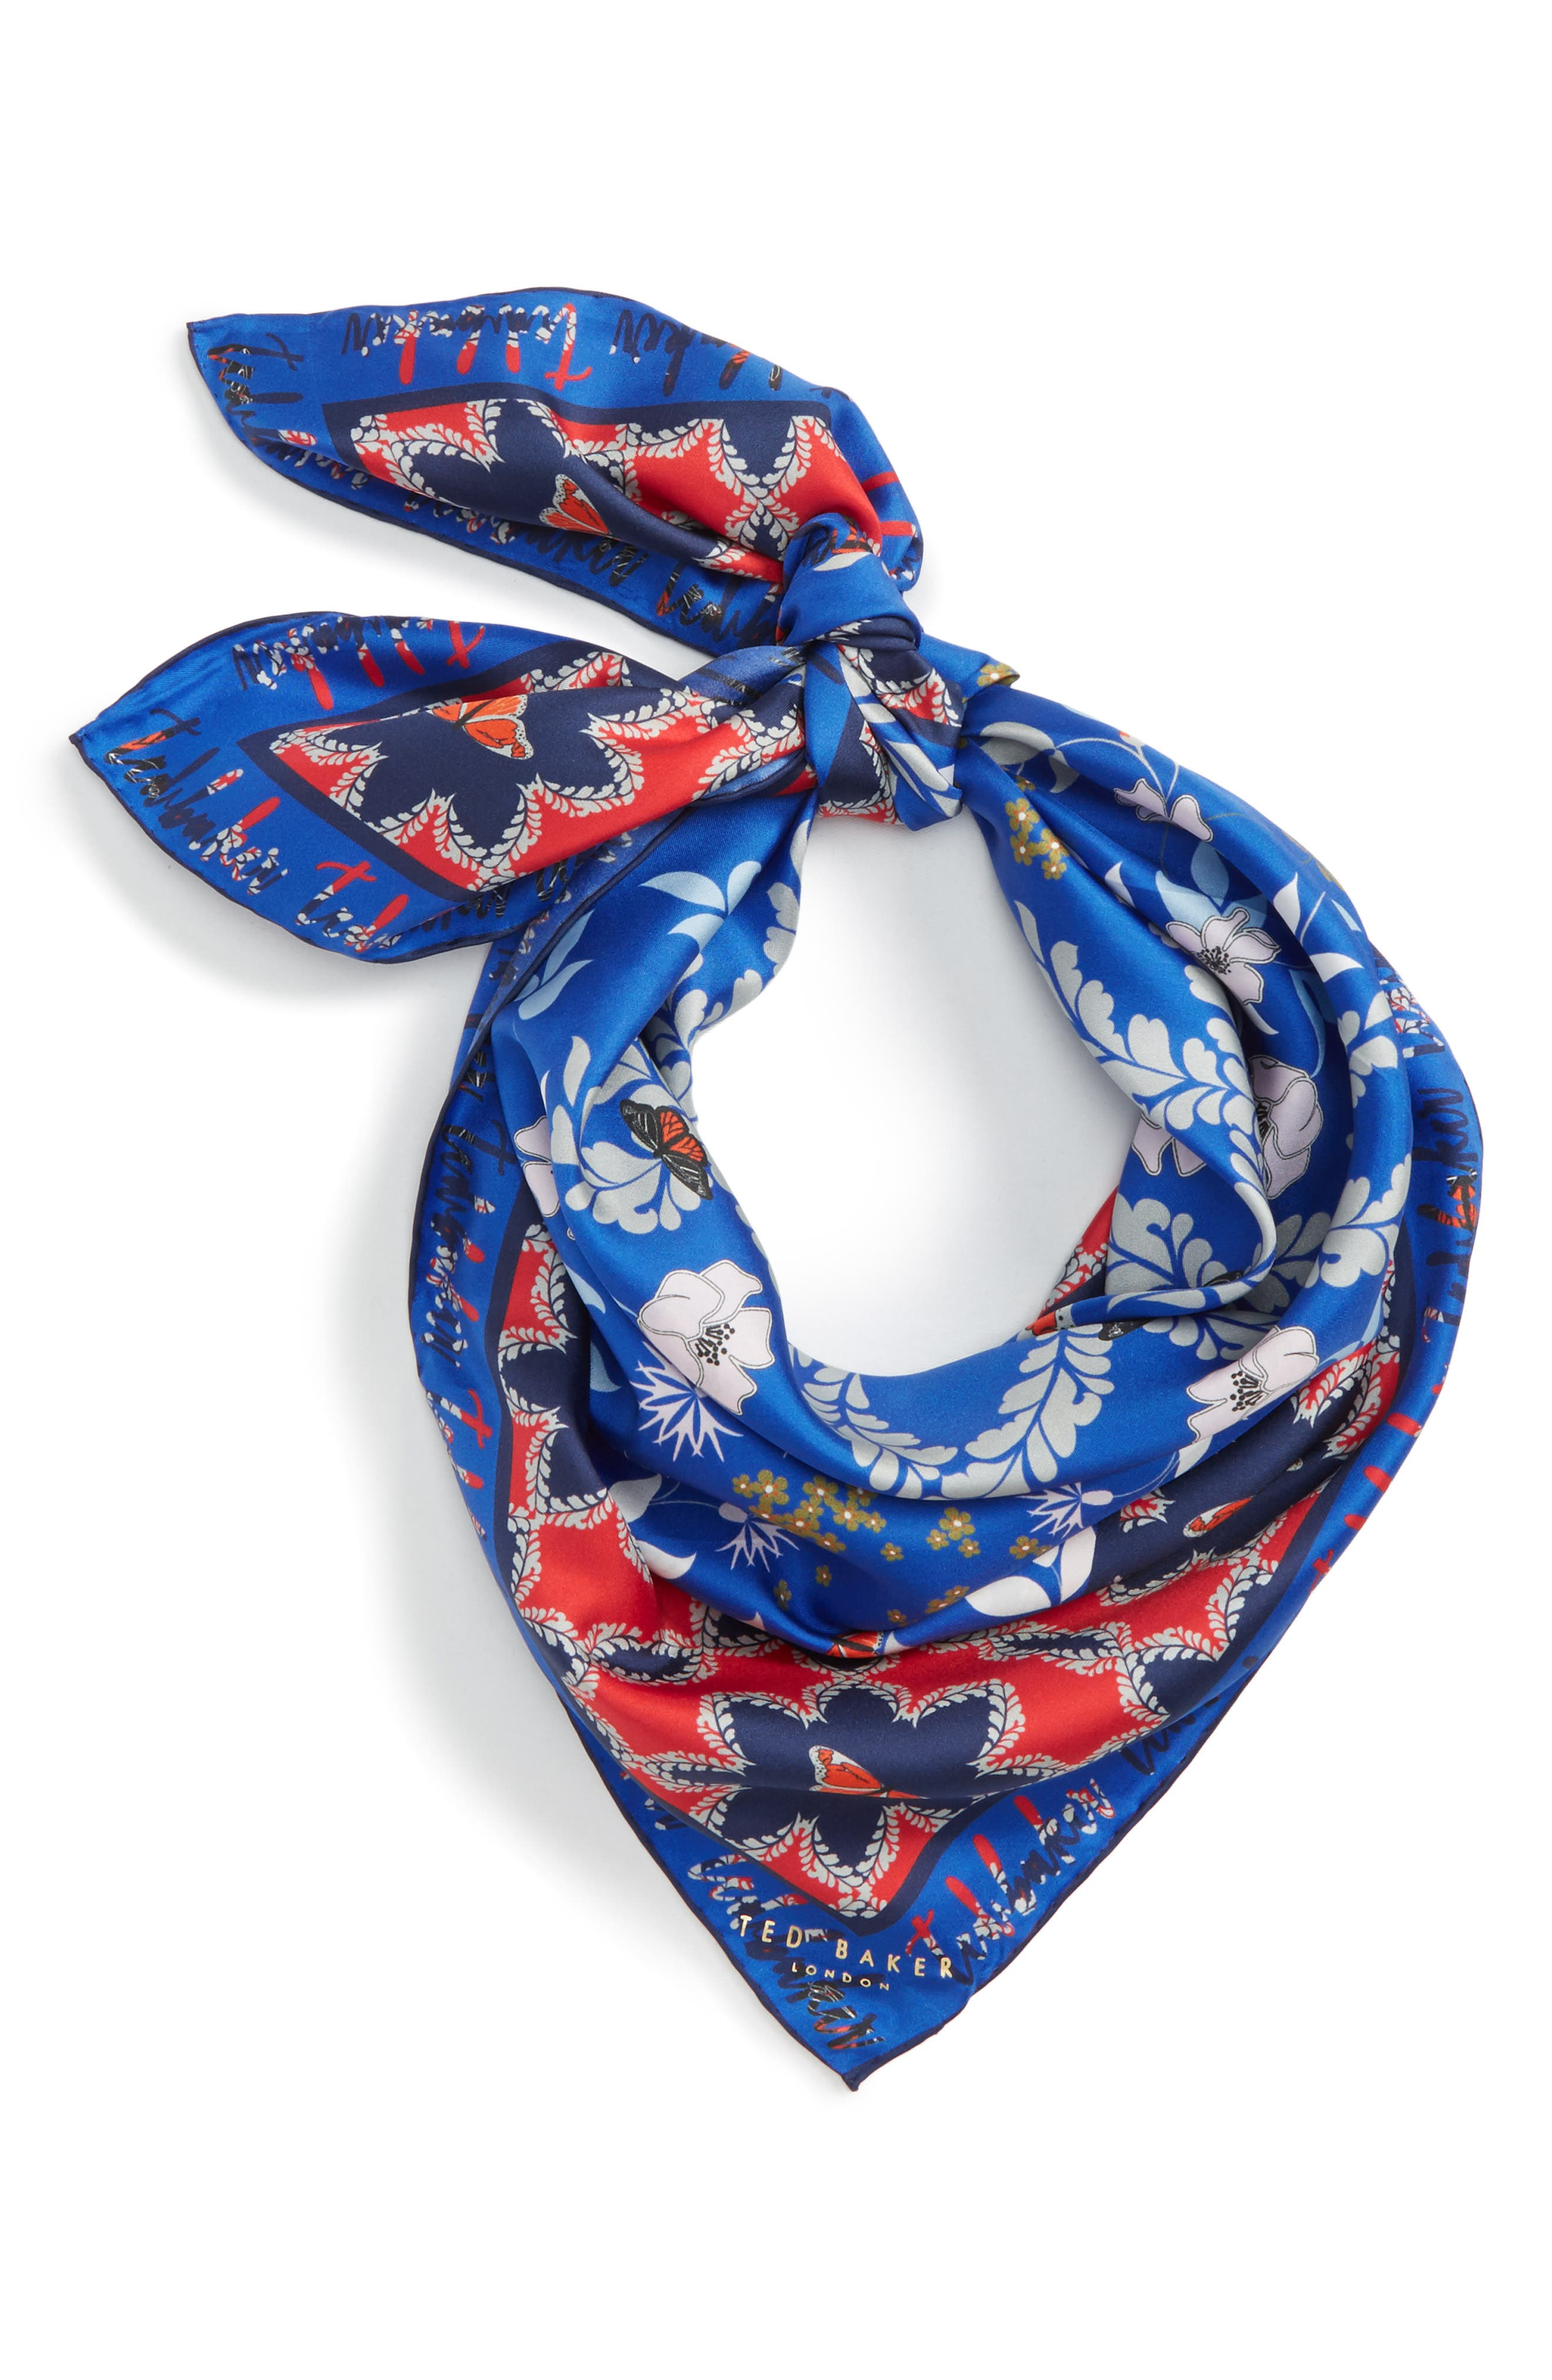 TED BAKER LONDON Kyoto Gardens Silk Square Scarf